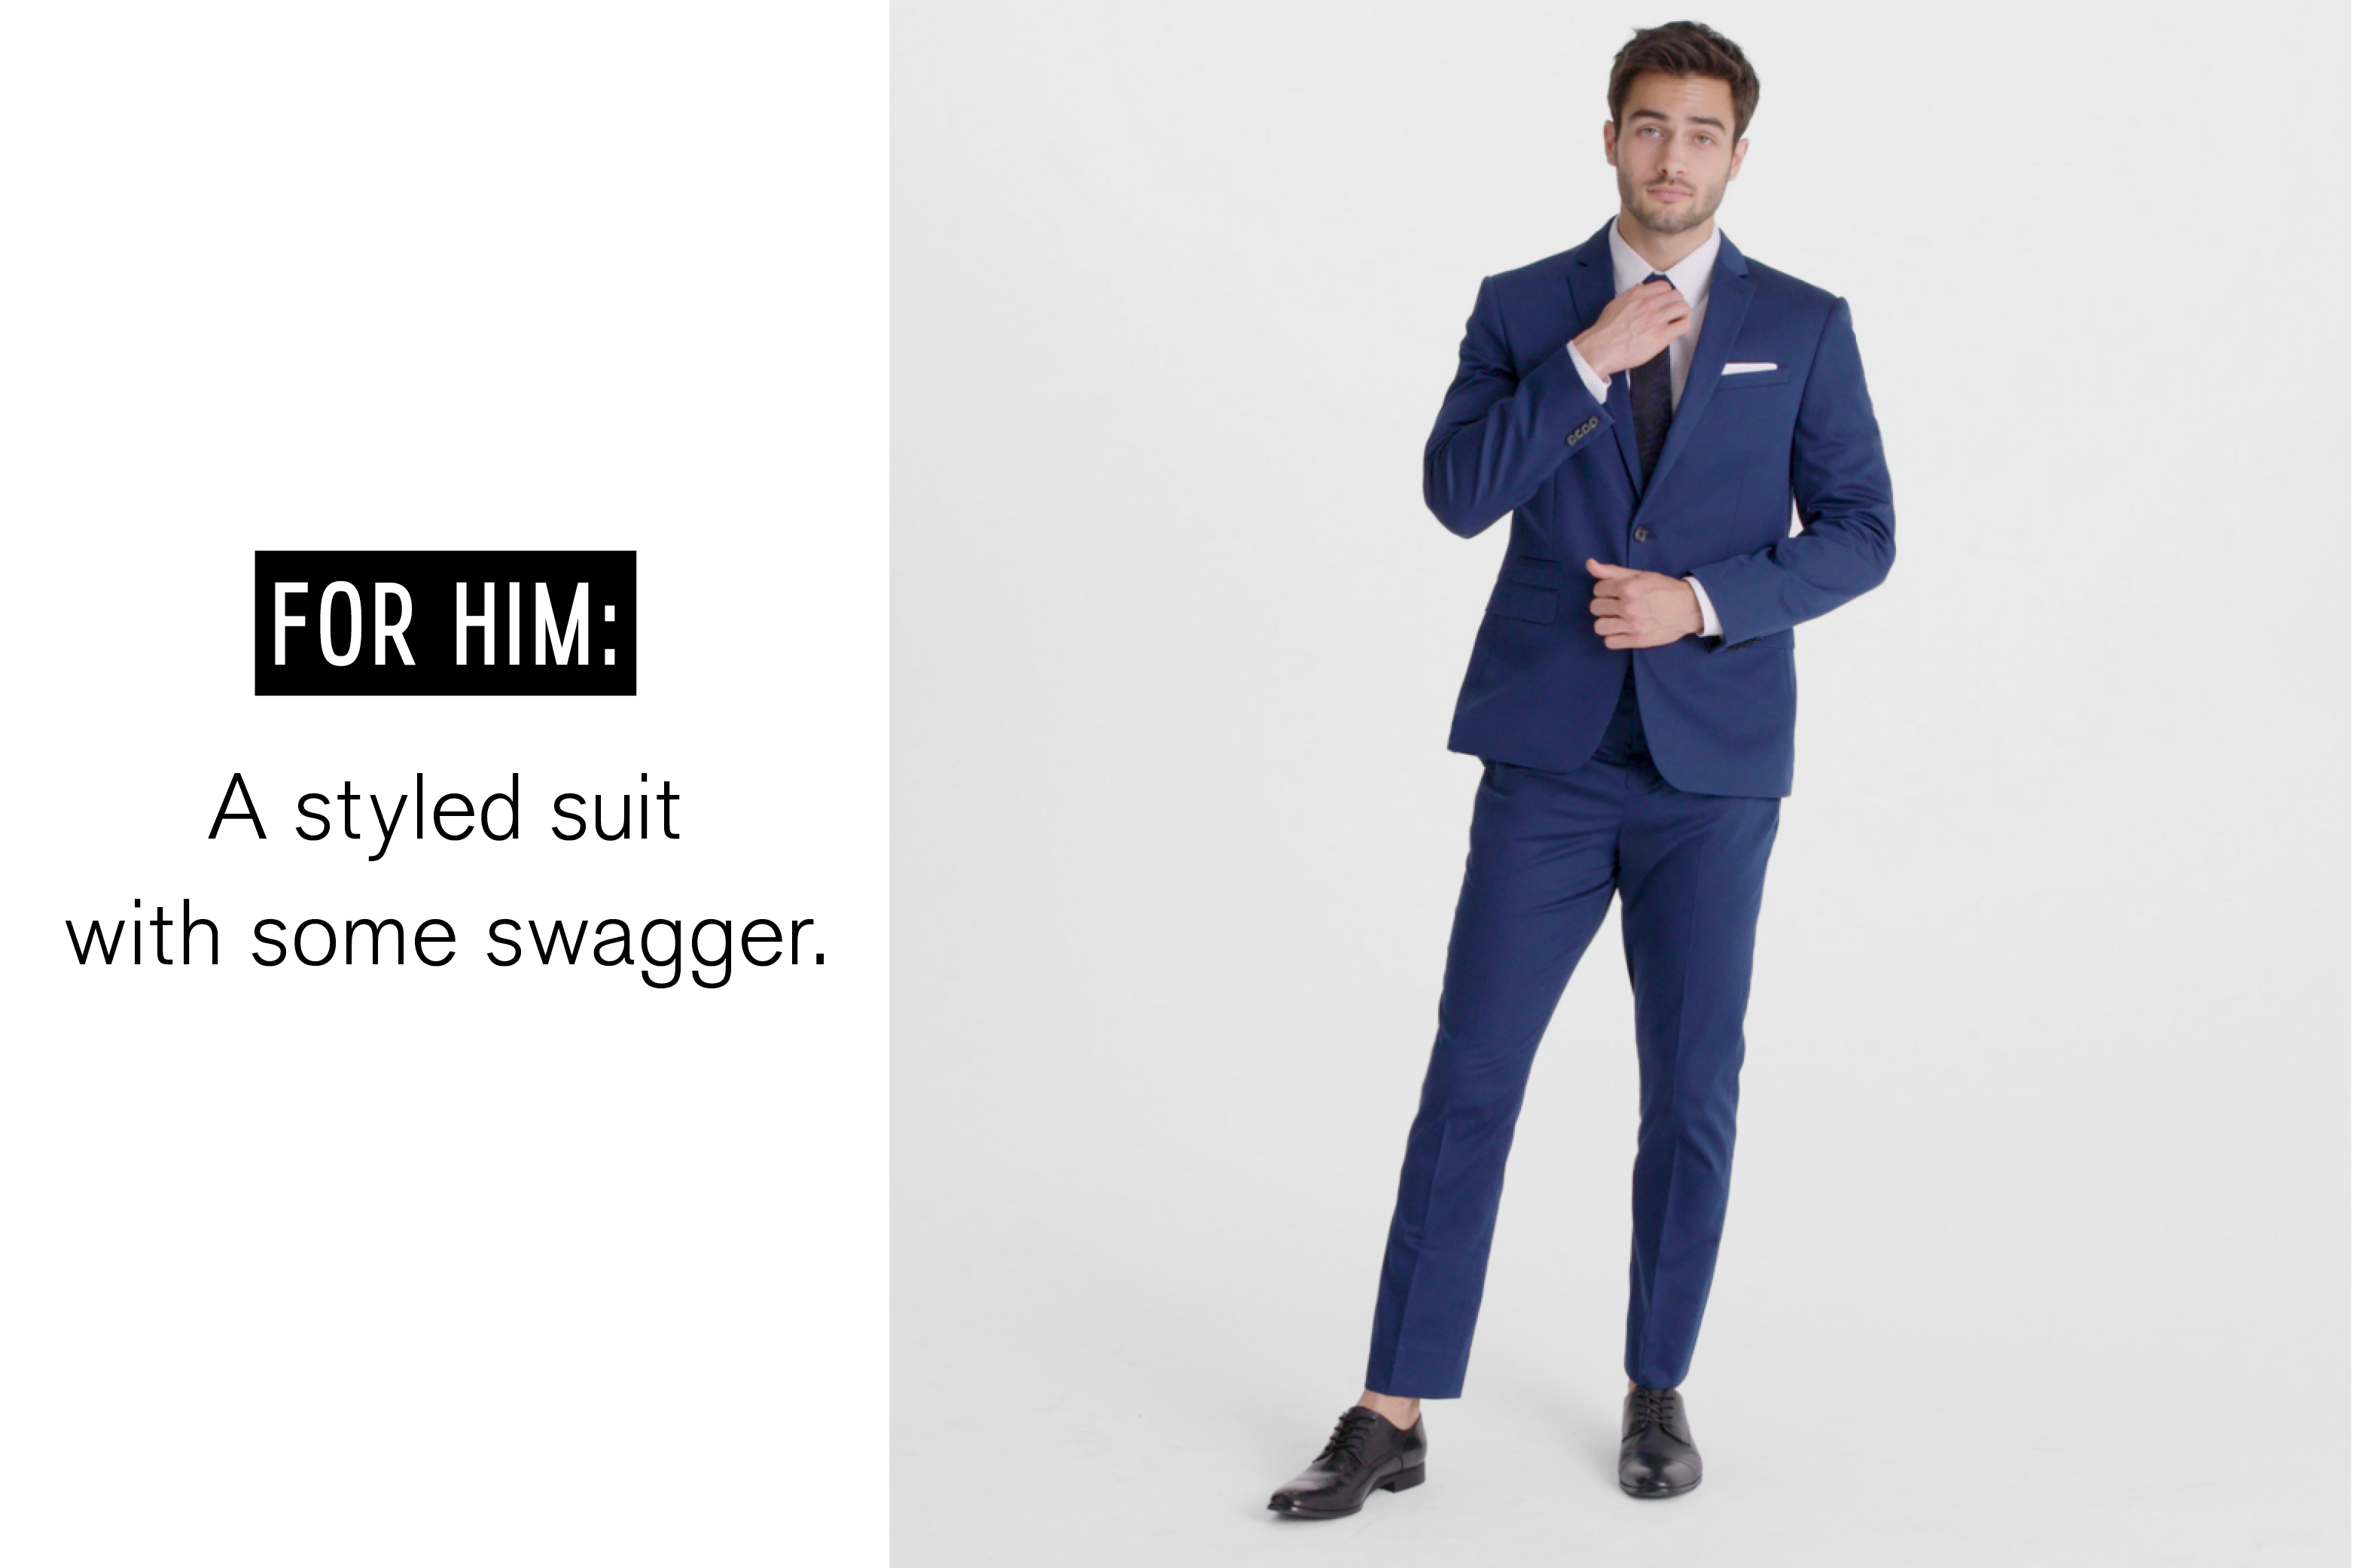 for-him-a-styled-suit-with-some-swagger